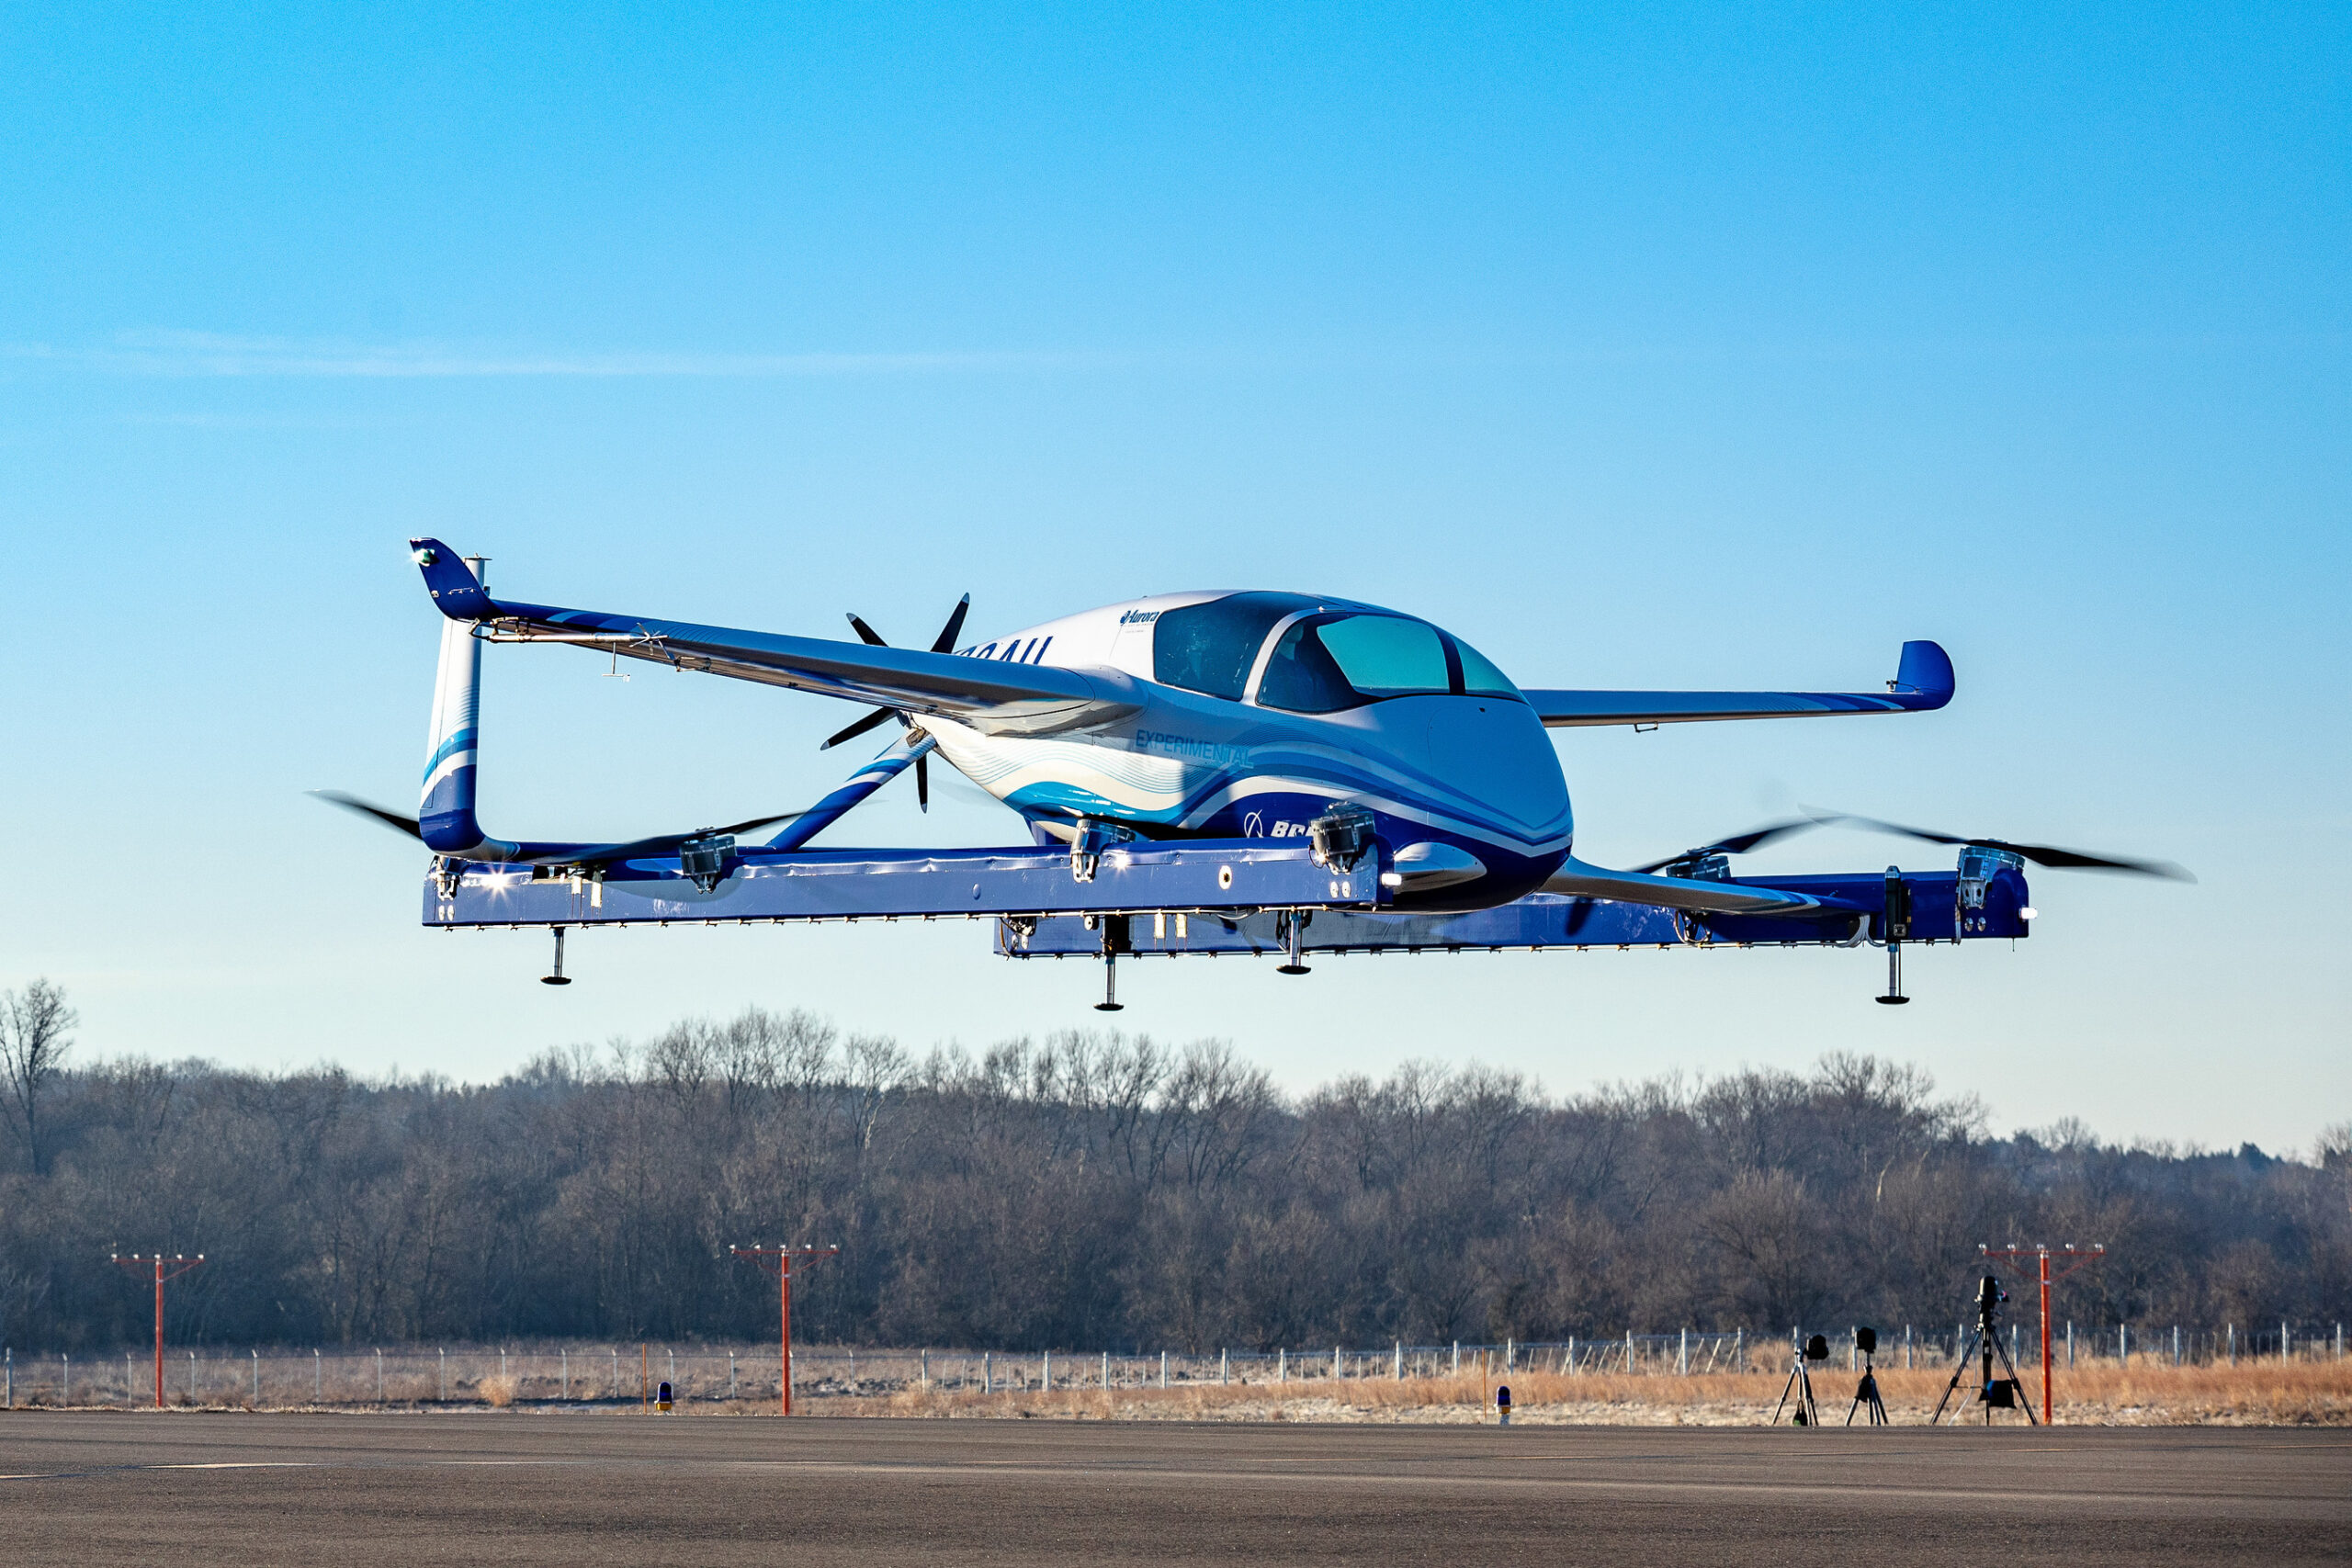 Boeing's Autonomous Passenger Air Vehicle completes its first flight